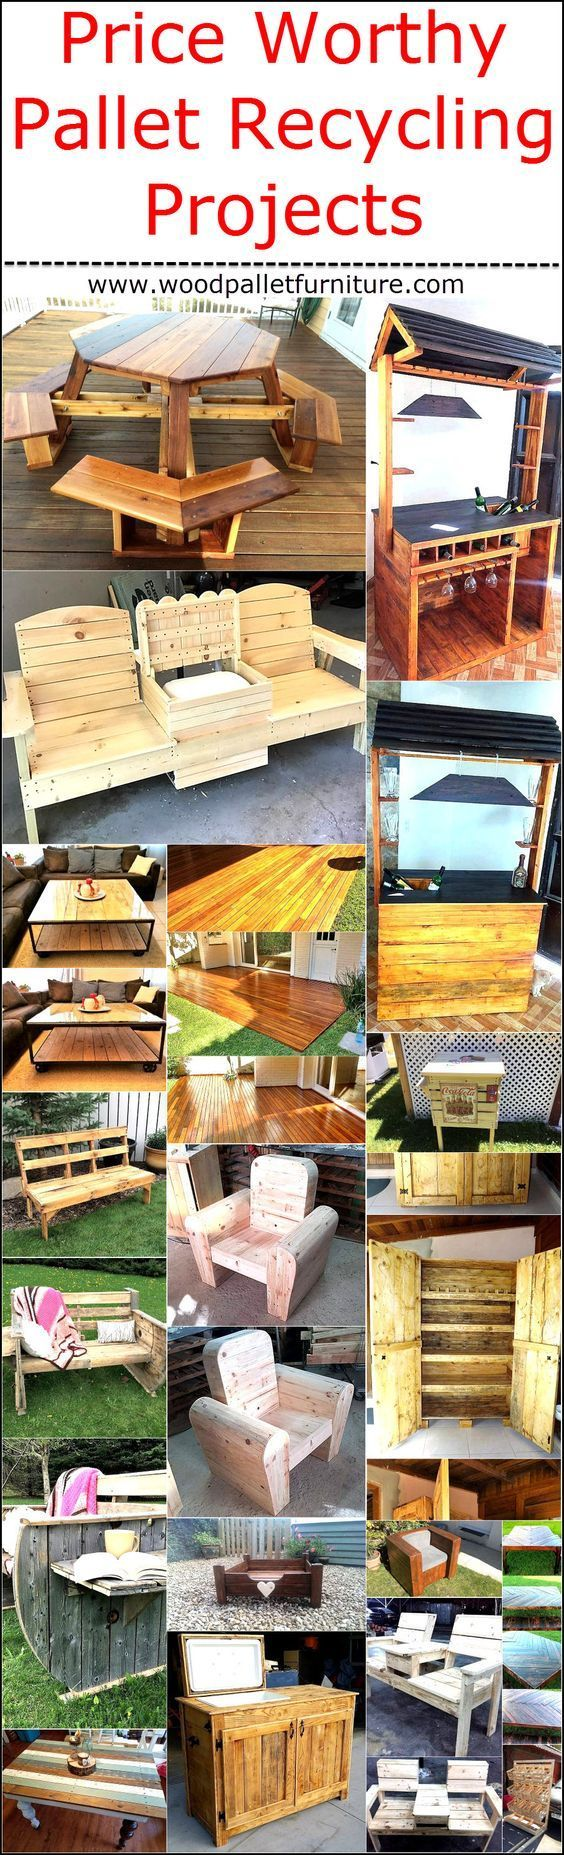 Price Worthy Pallet Recycling Projects | Wooden pallet ...